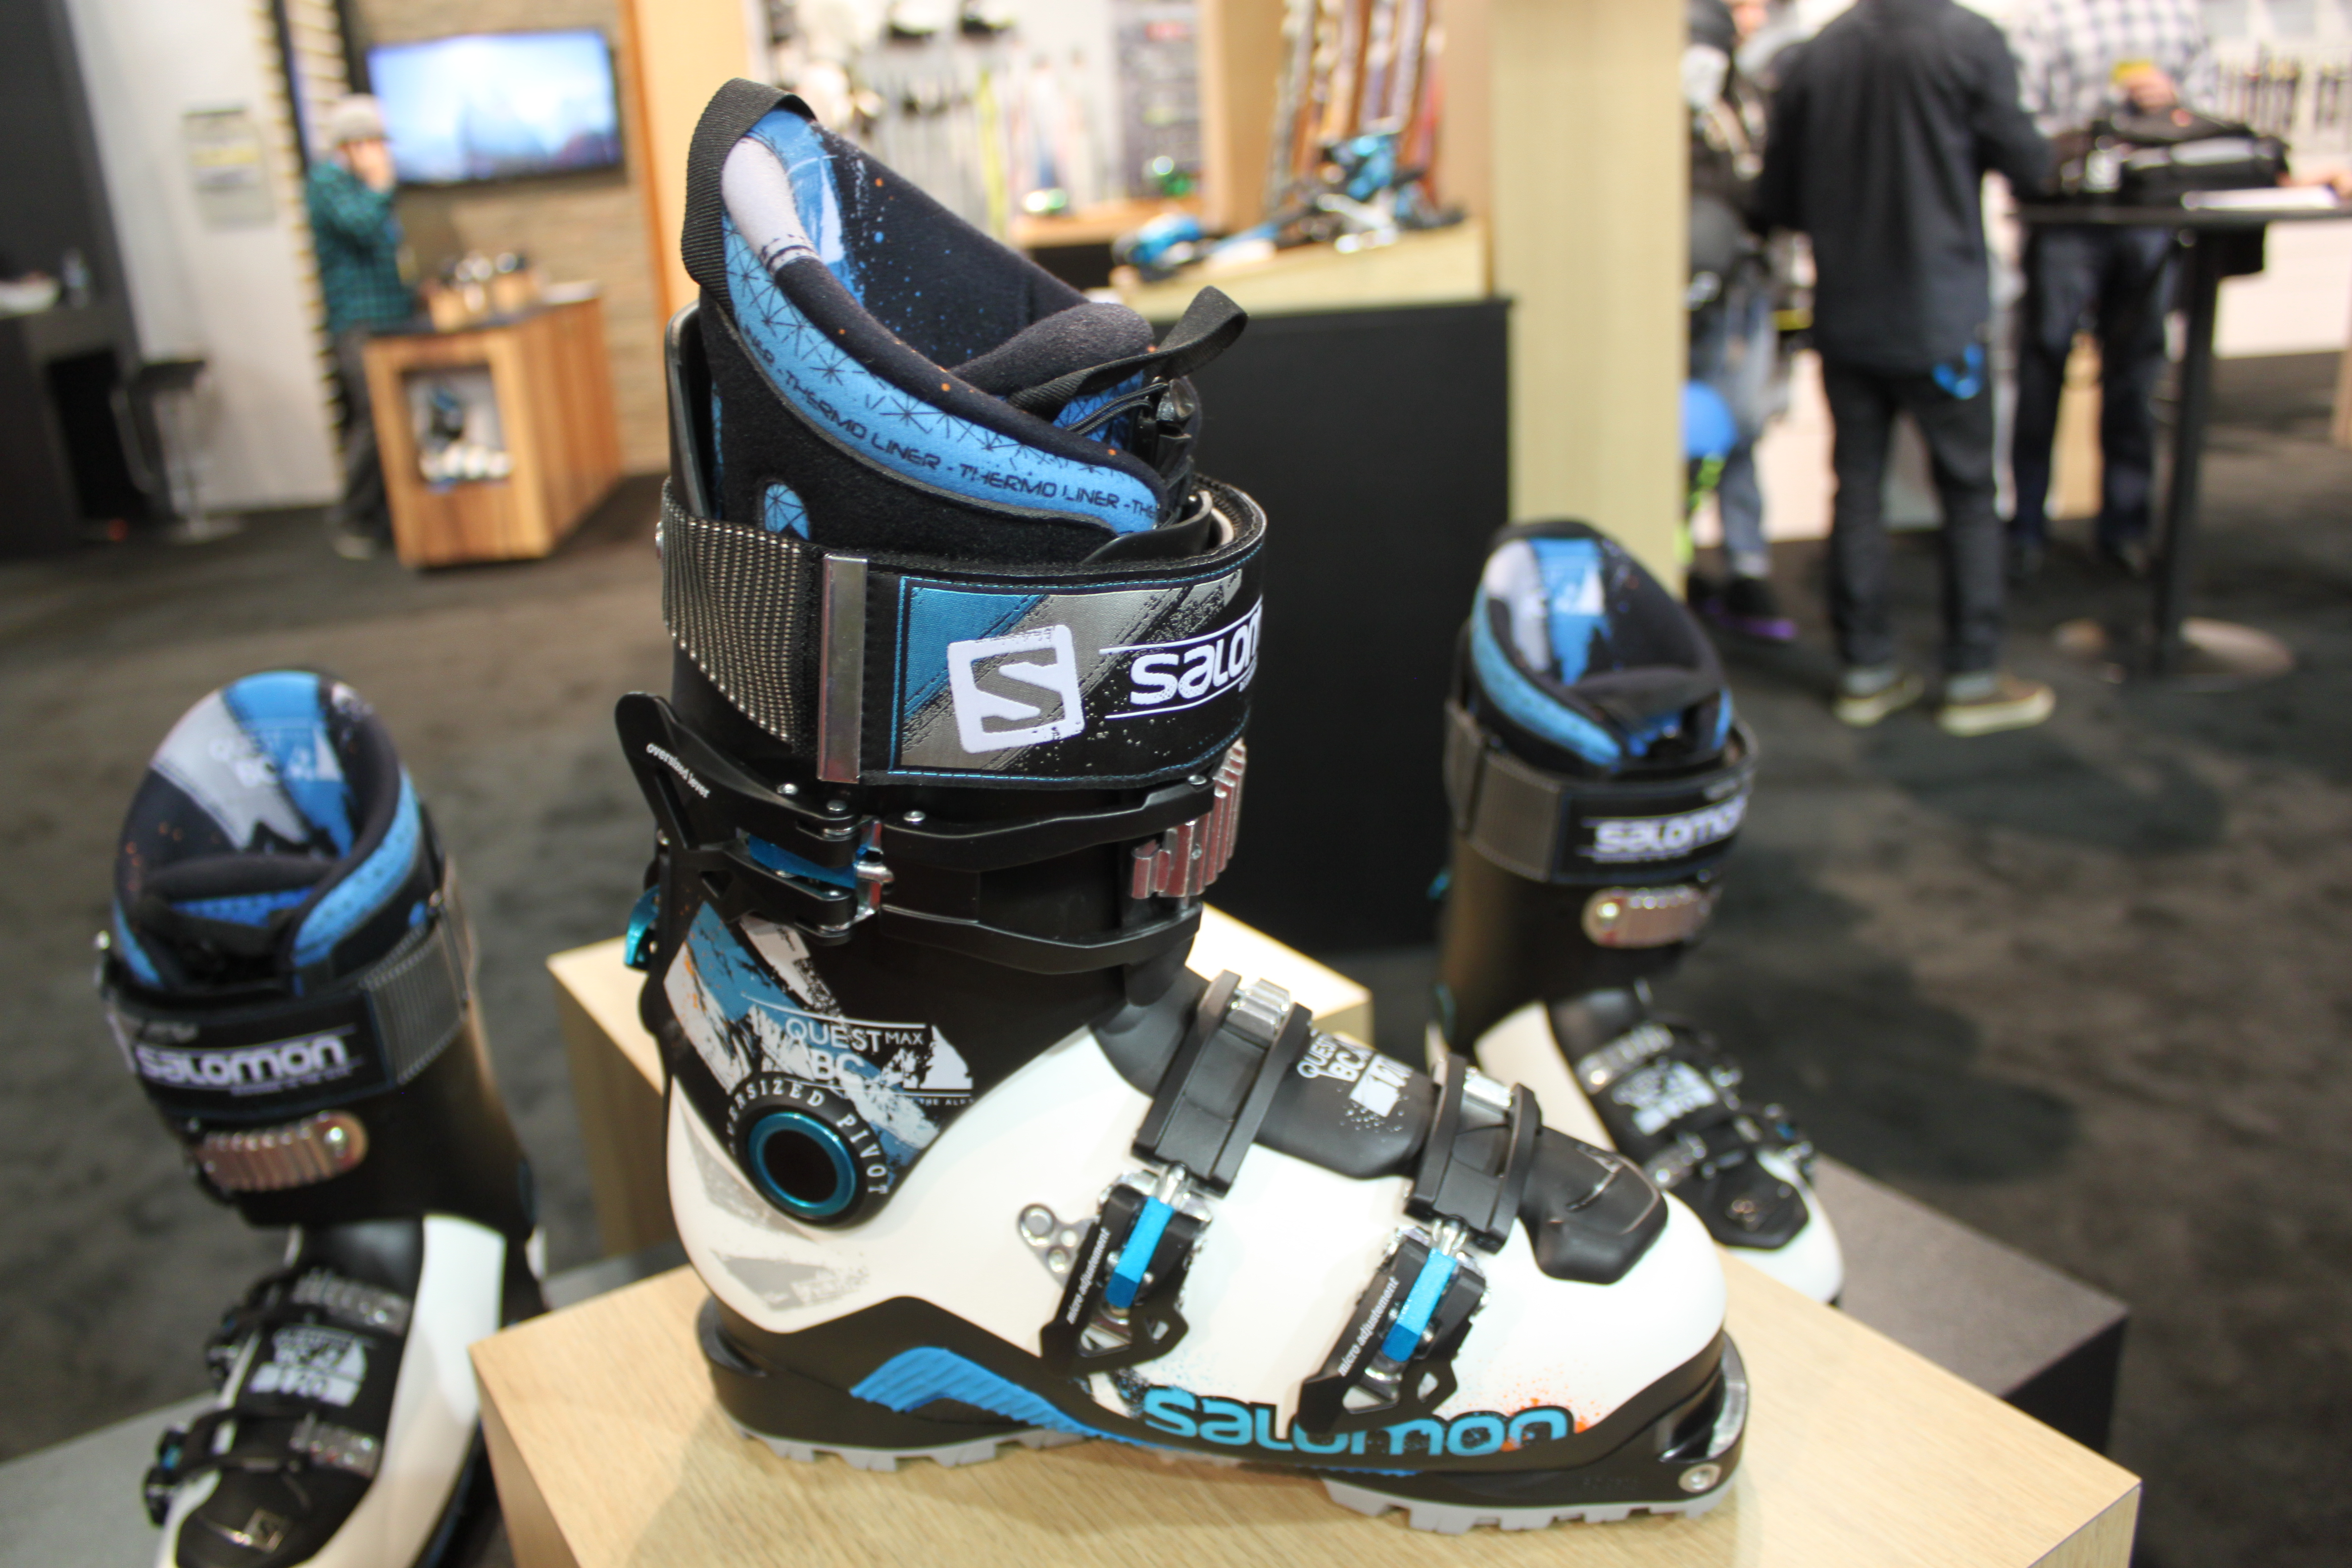 The Salomon Quest Max BC 120 ski boots as seen at Outdoor Retailer, just waiting for review. (Photo: Jared Hargrave - UtahOutside.com)